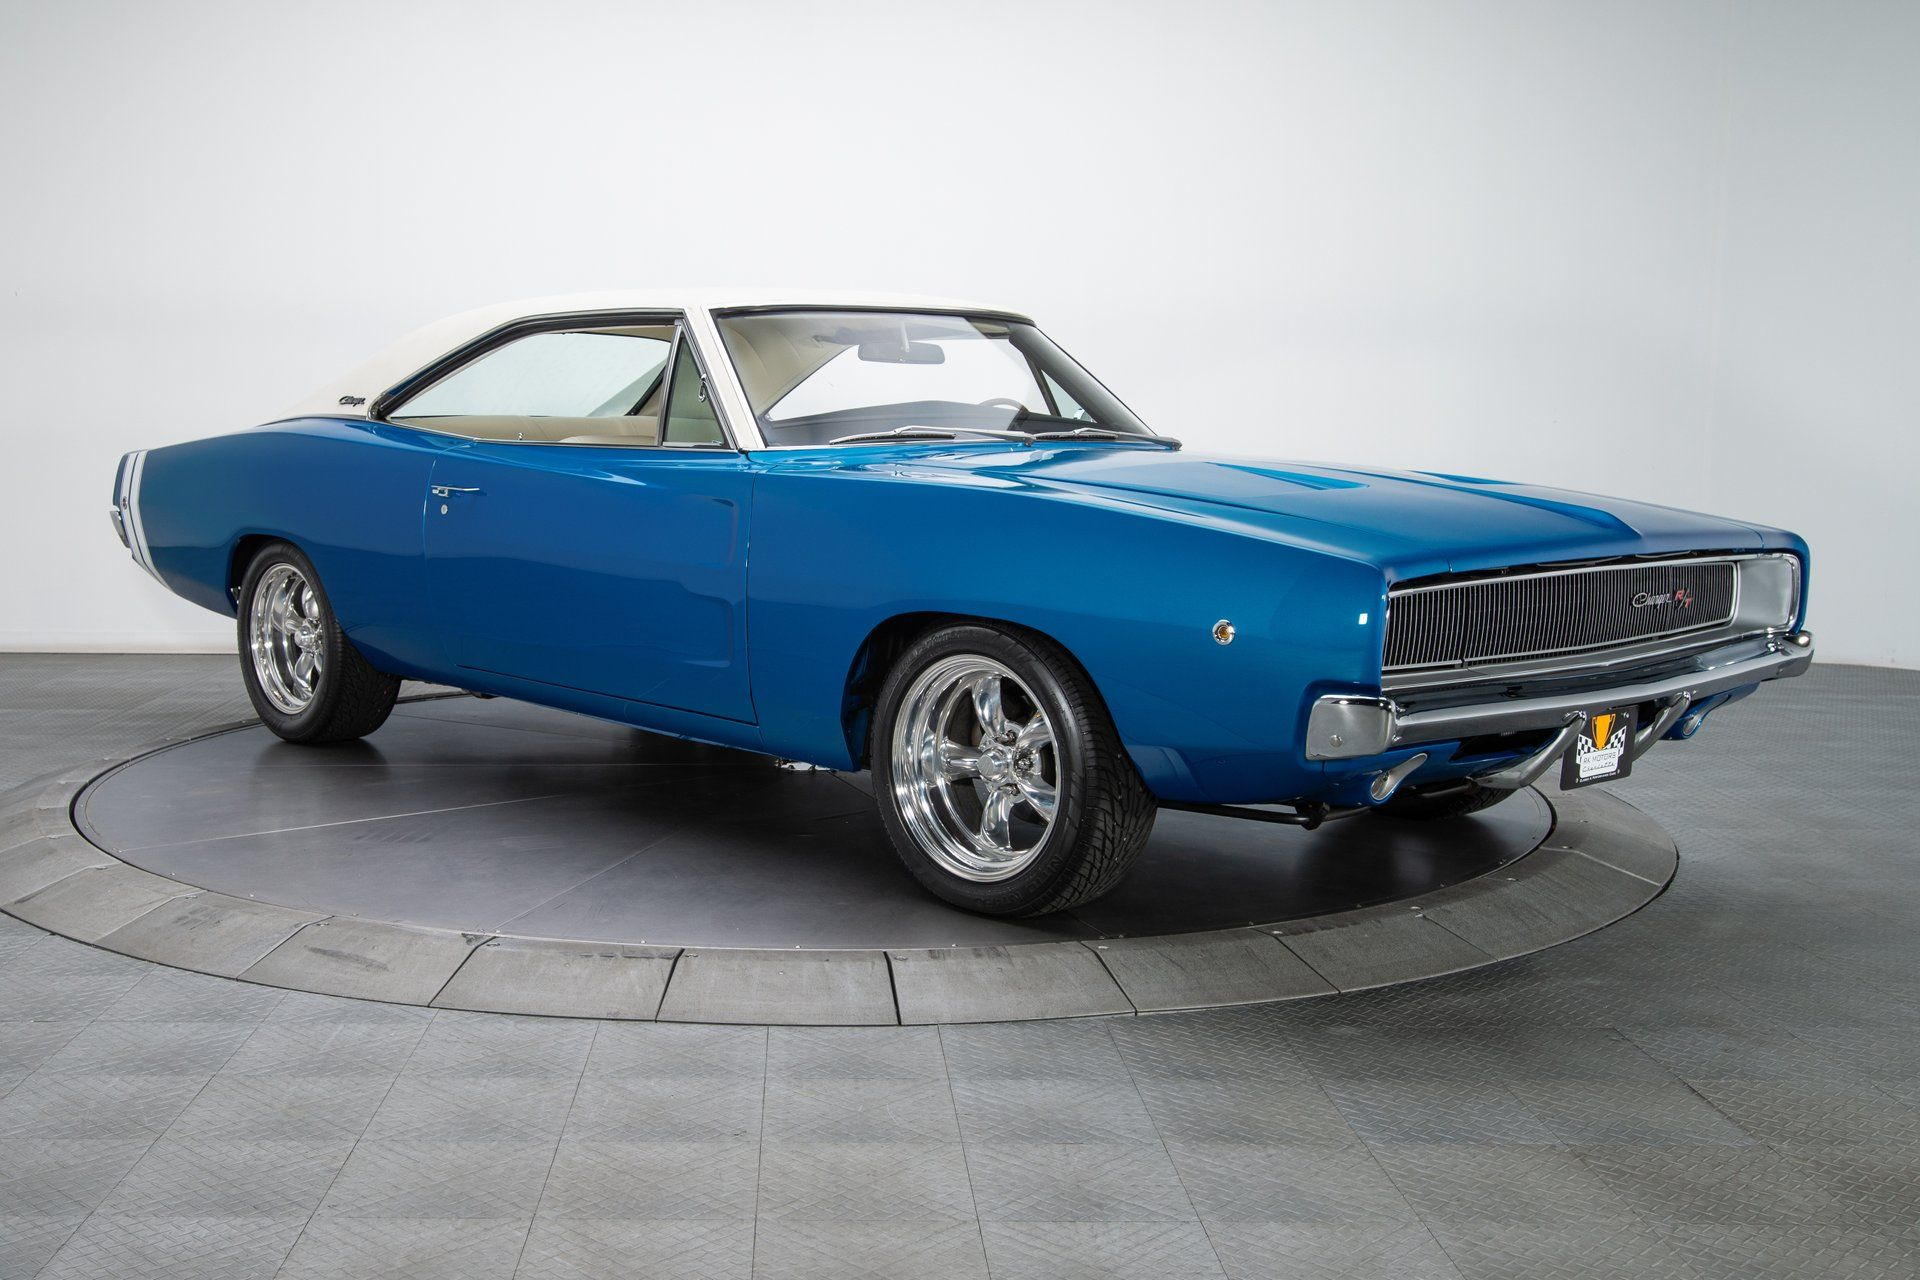 136361 1968 dodge charger rk motors classic cars for sale dodge charger 1968 dodge charger dodge 136361 1968 dodge charger rk motors